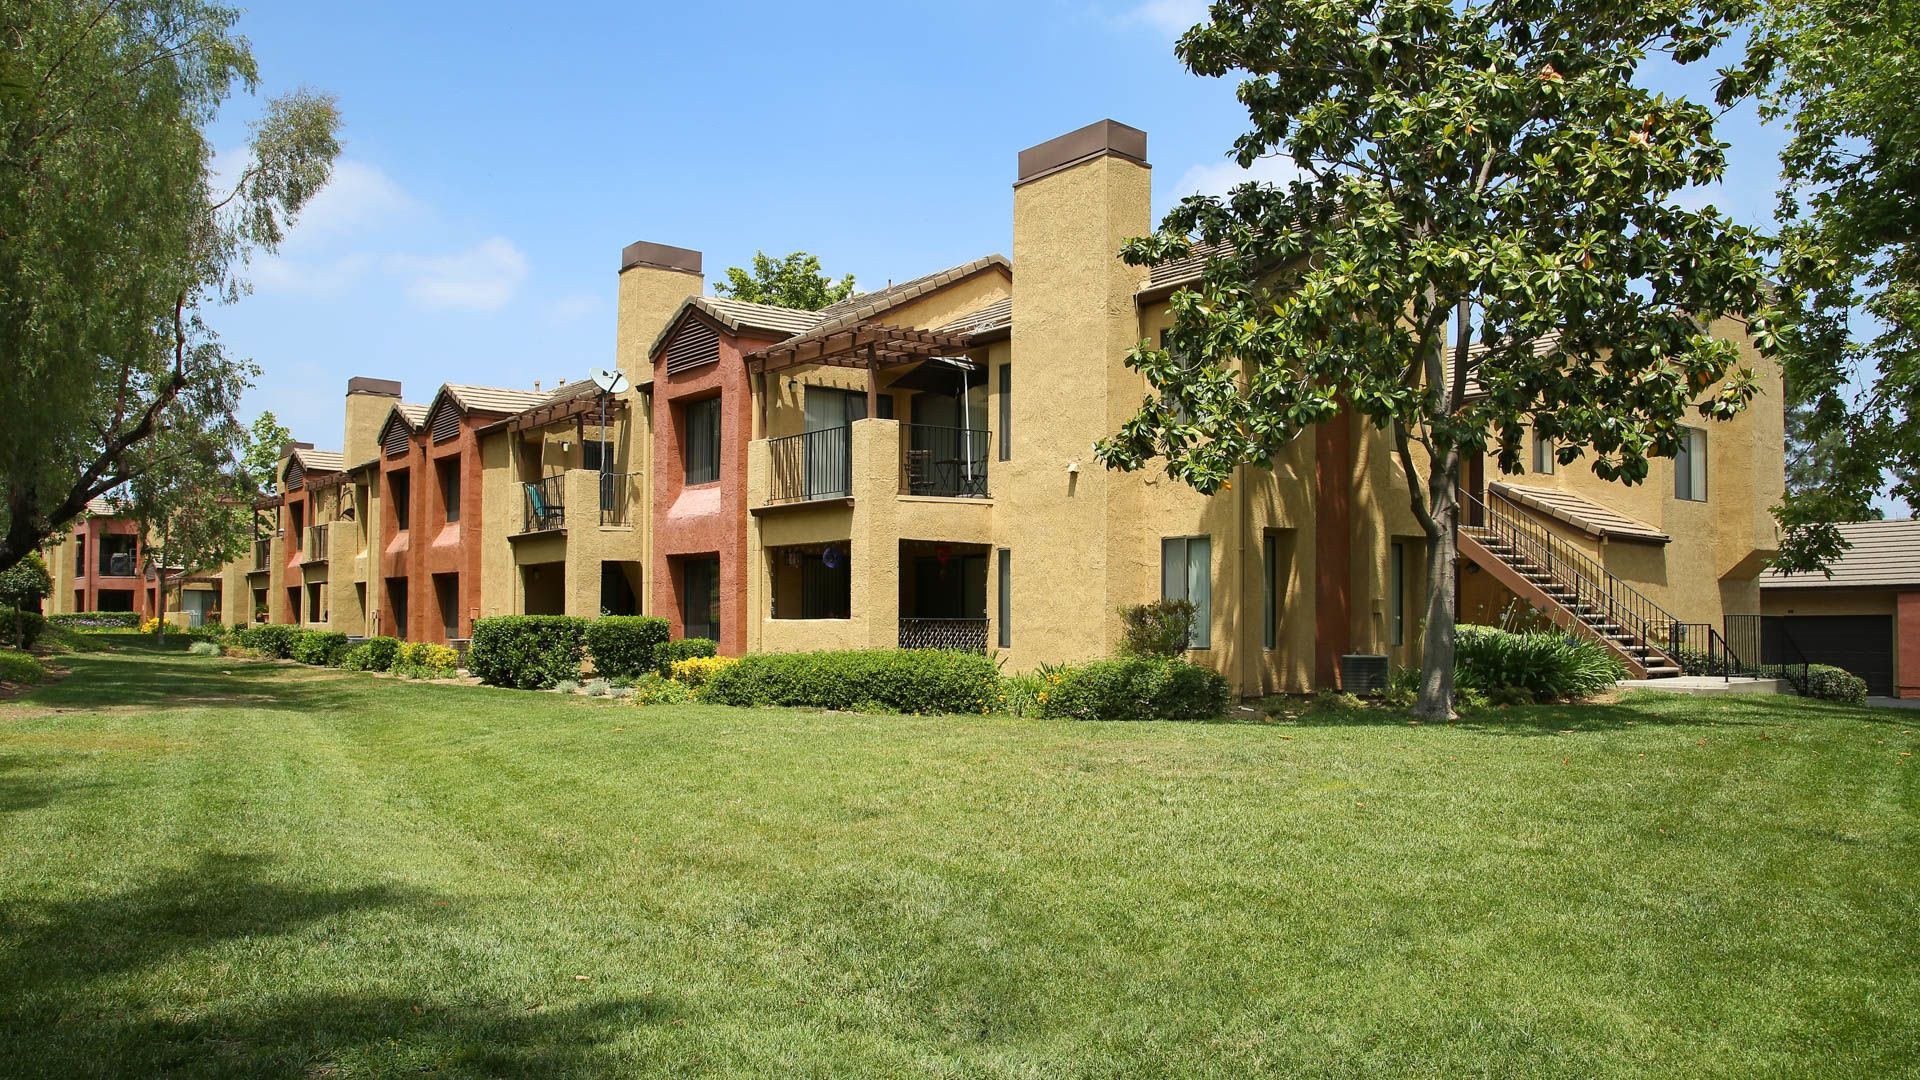 Eagle Canyon Apartments